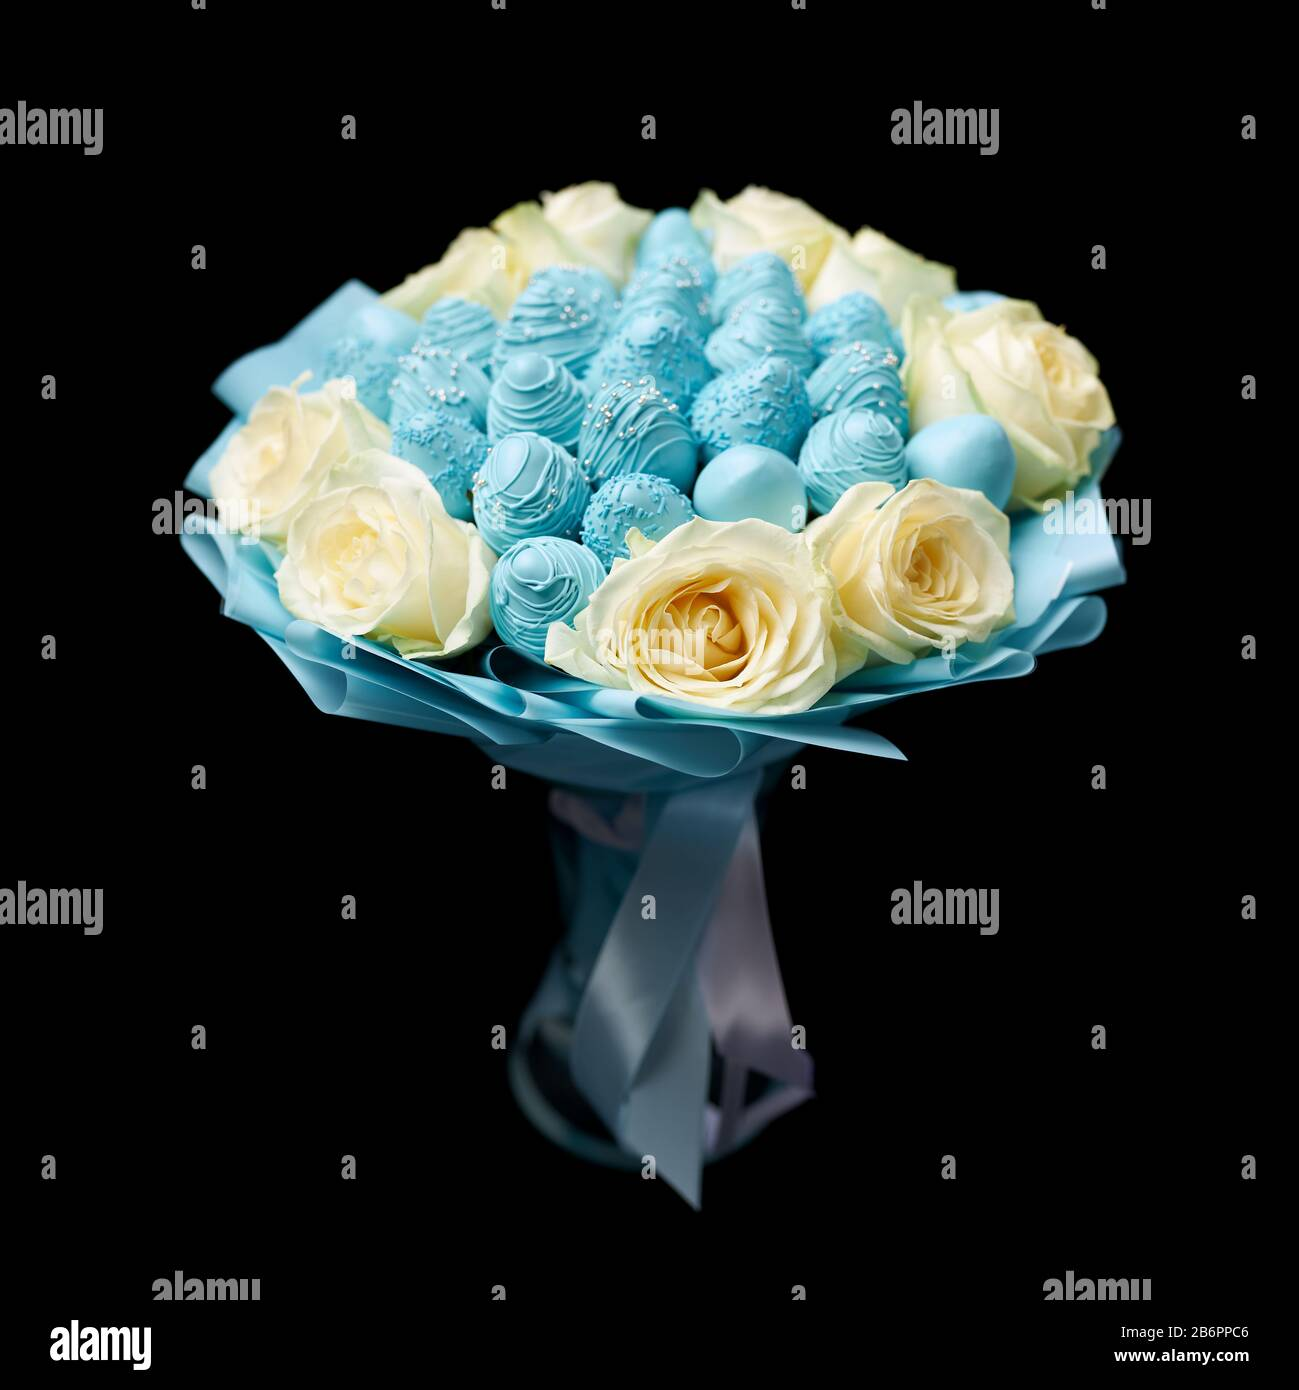 Unique Bouquet Of White Roses And Ripe Strawberries Covered With Blue Chocolate Stands In A Vase On A Black Background Stock Photo Alamy